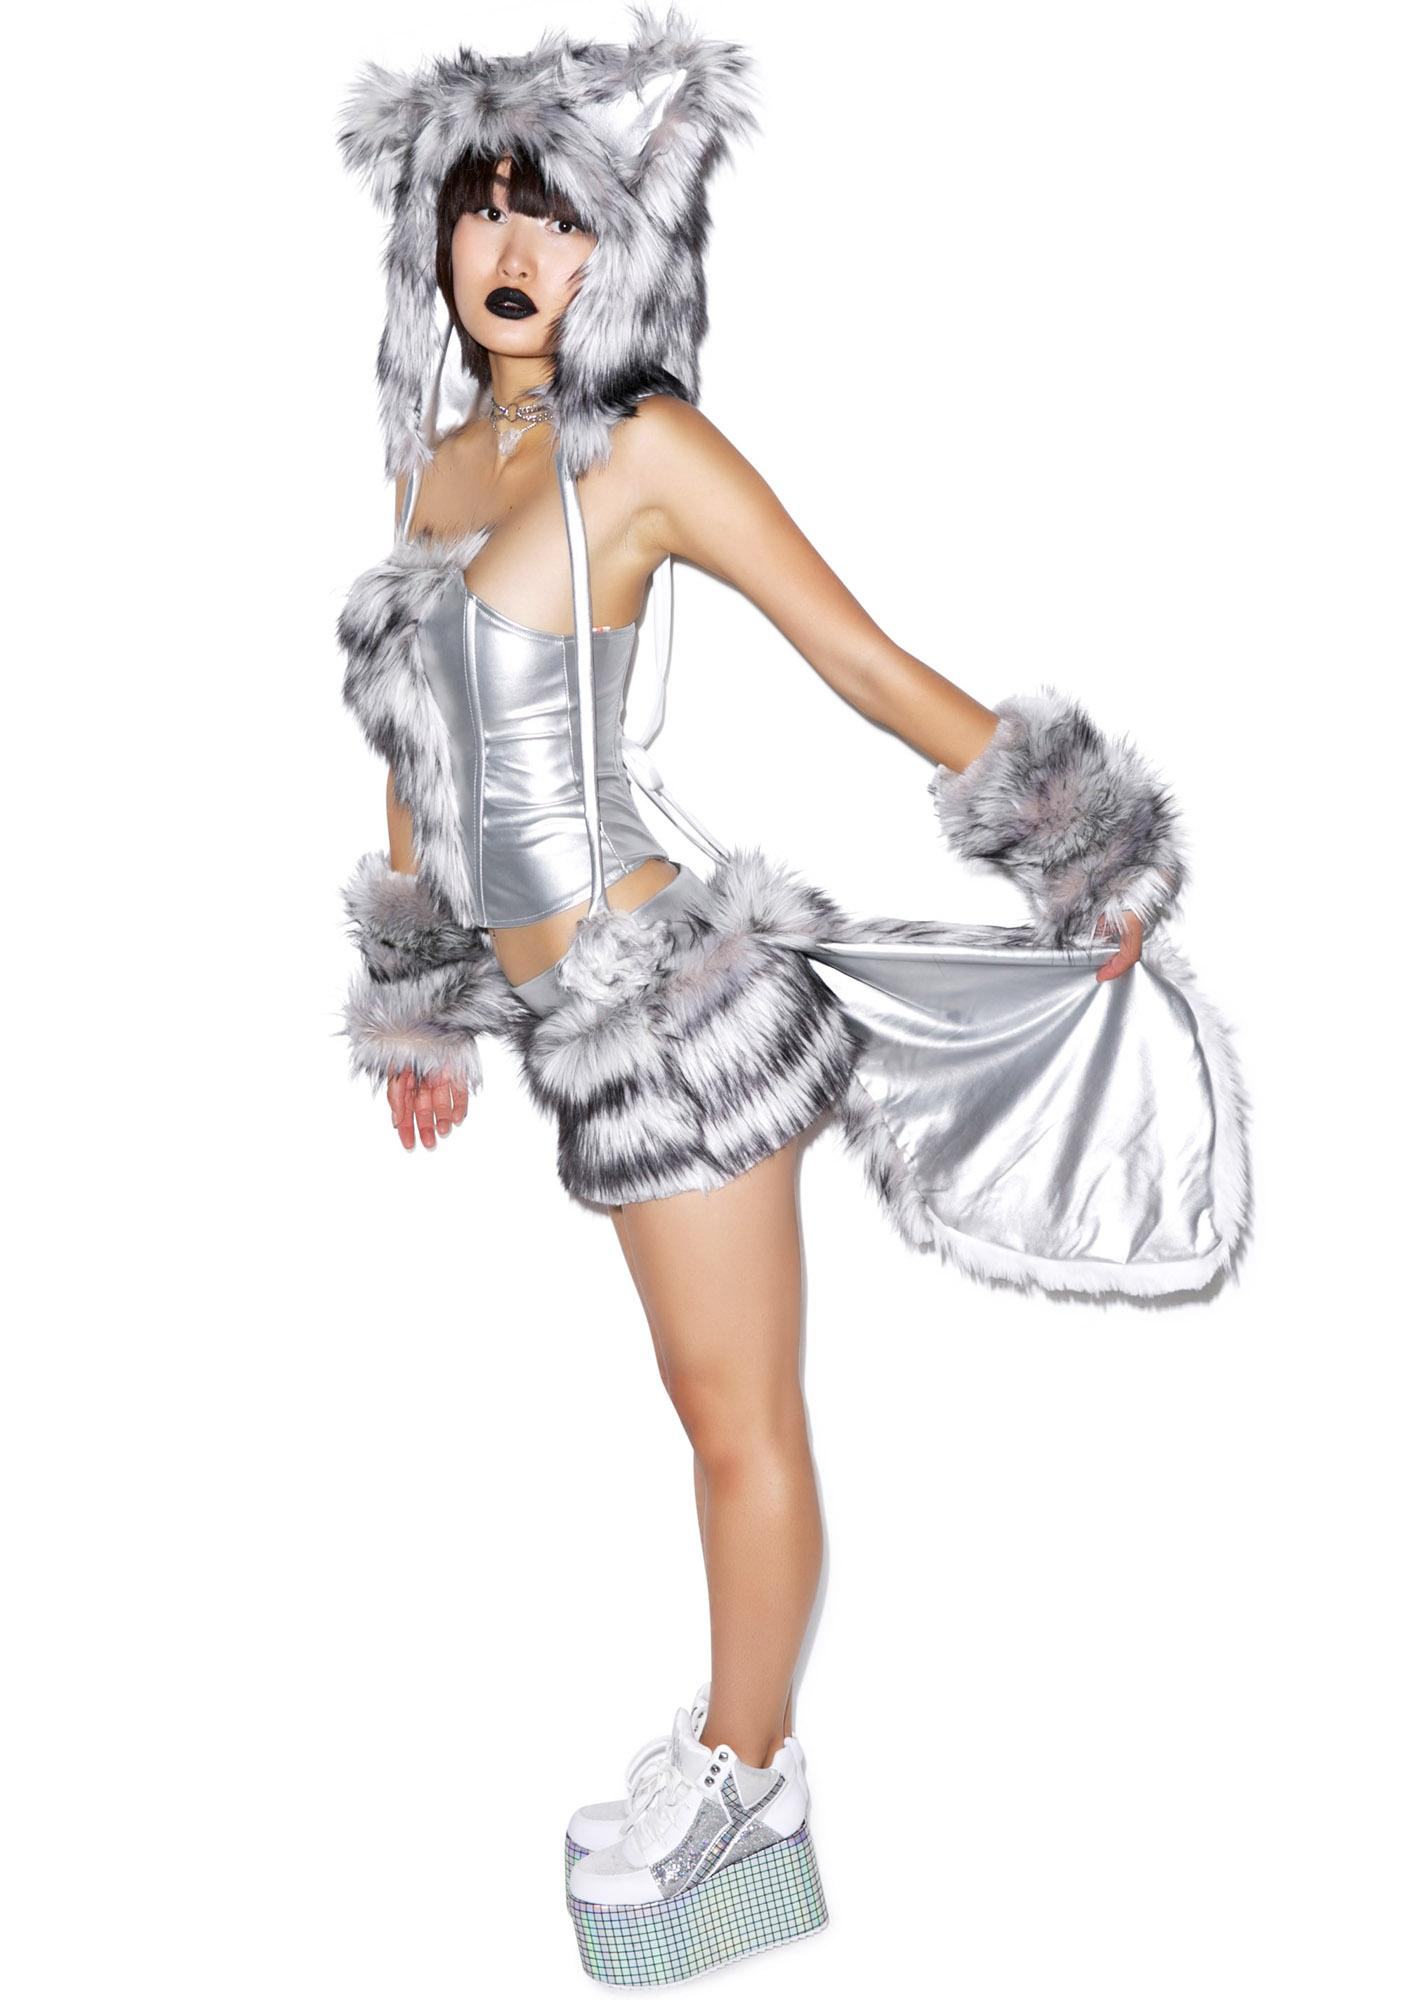 J Valentine Big Bad Wolf Costume